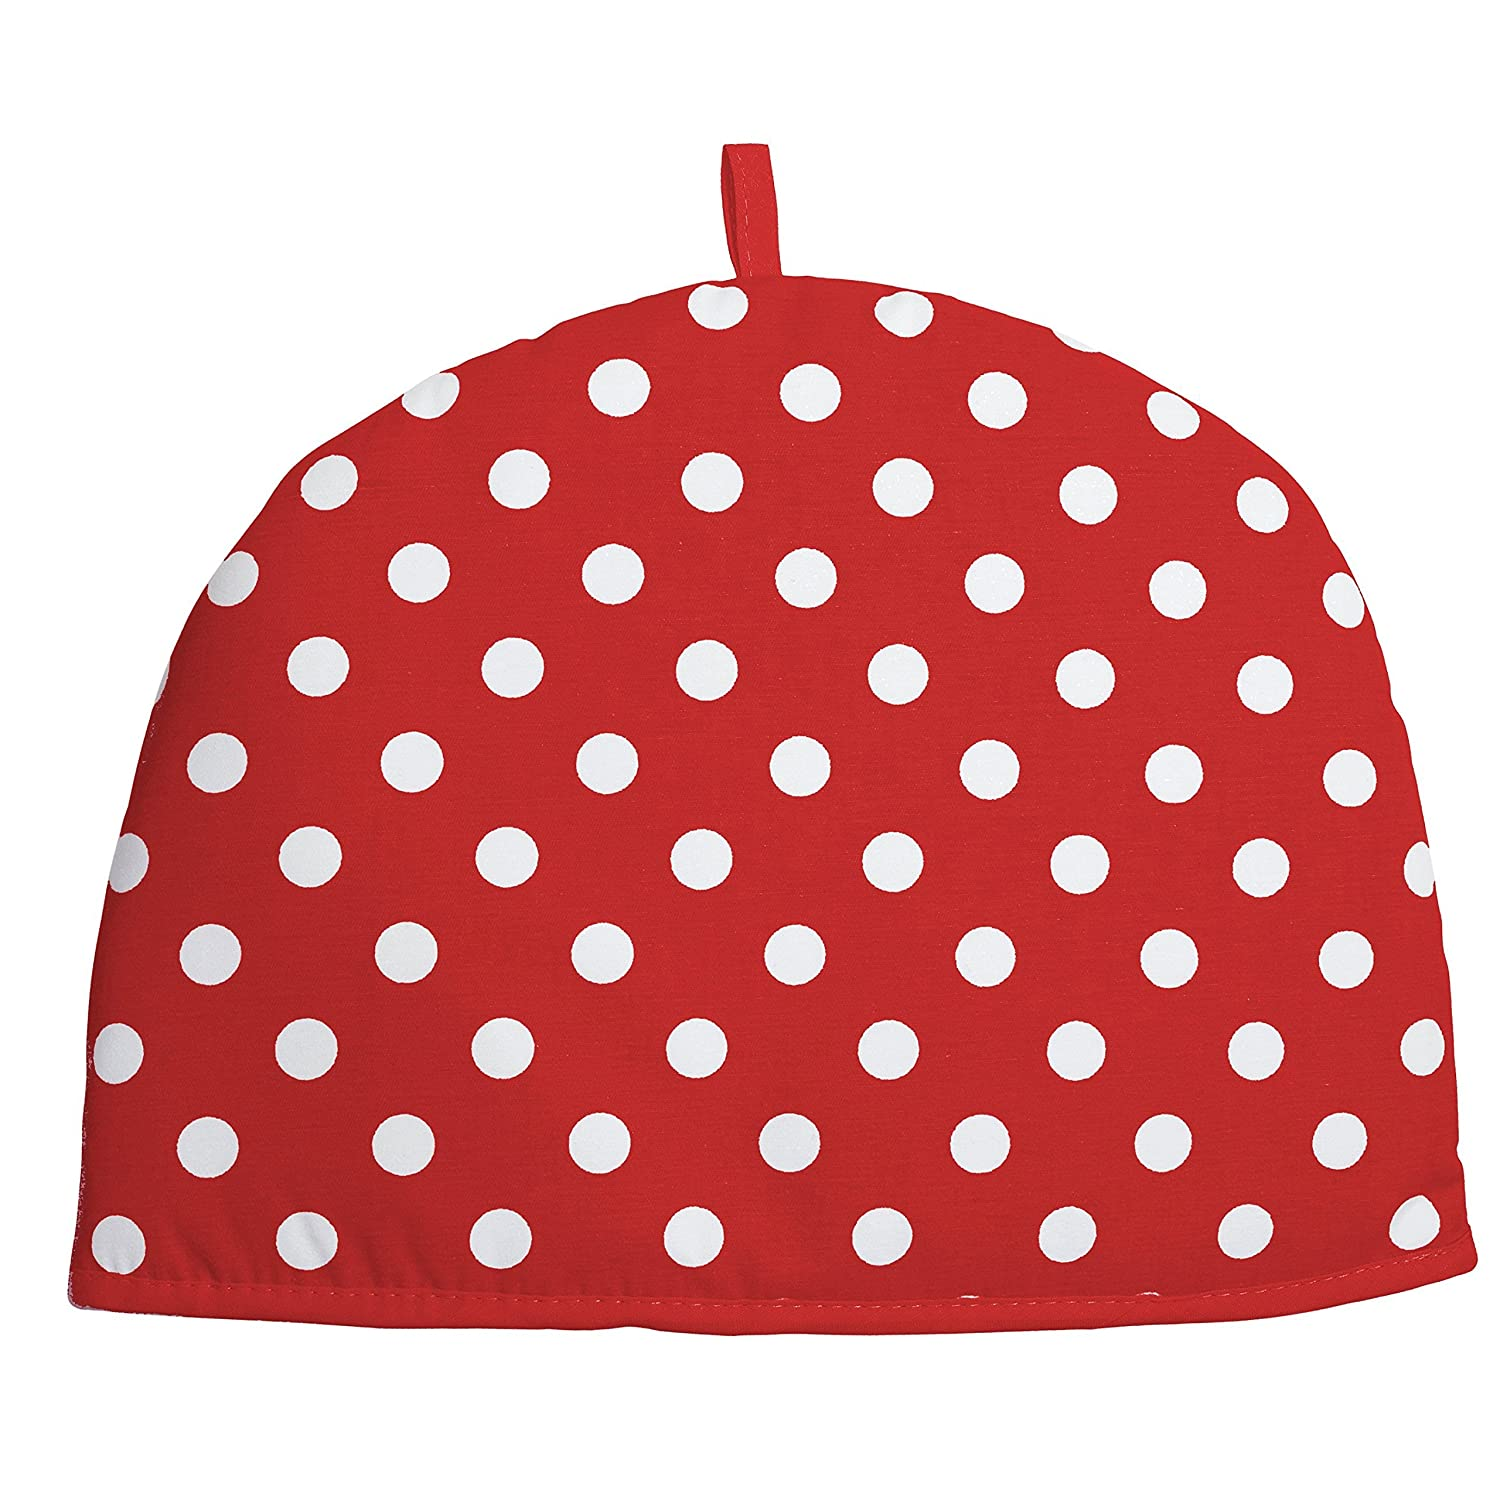 Rushbrookes by Dexam Red Flamenco Spot Cotton 2 Cup Tea Cosy 16163760 by Dexam